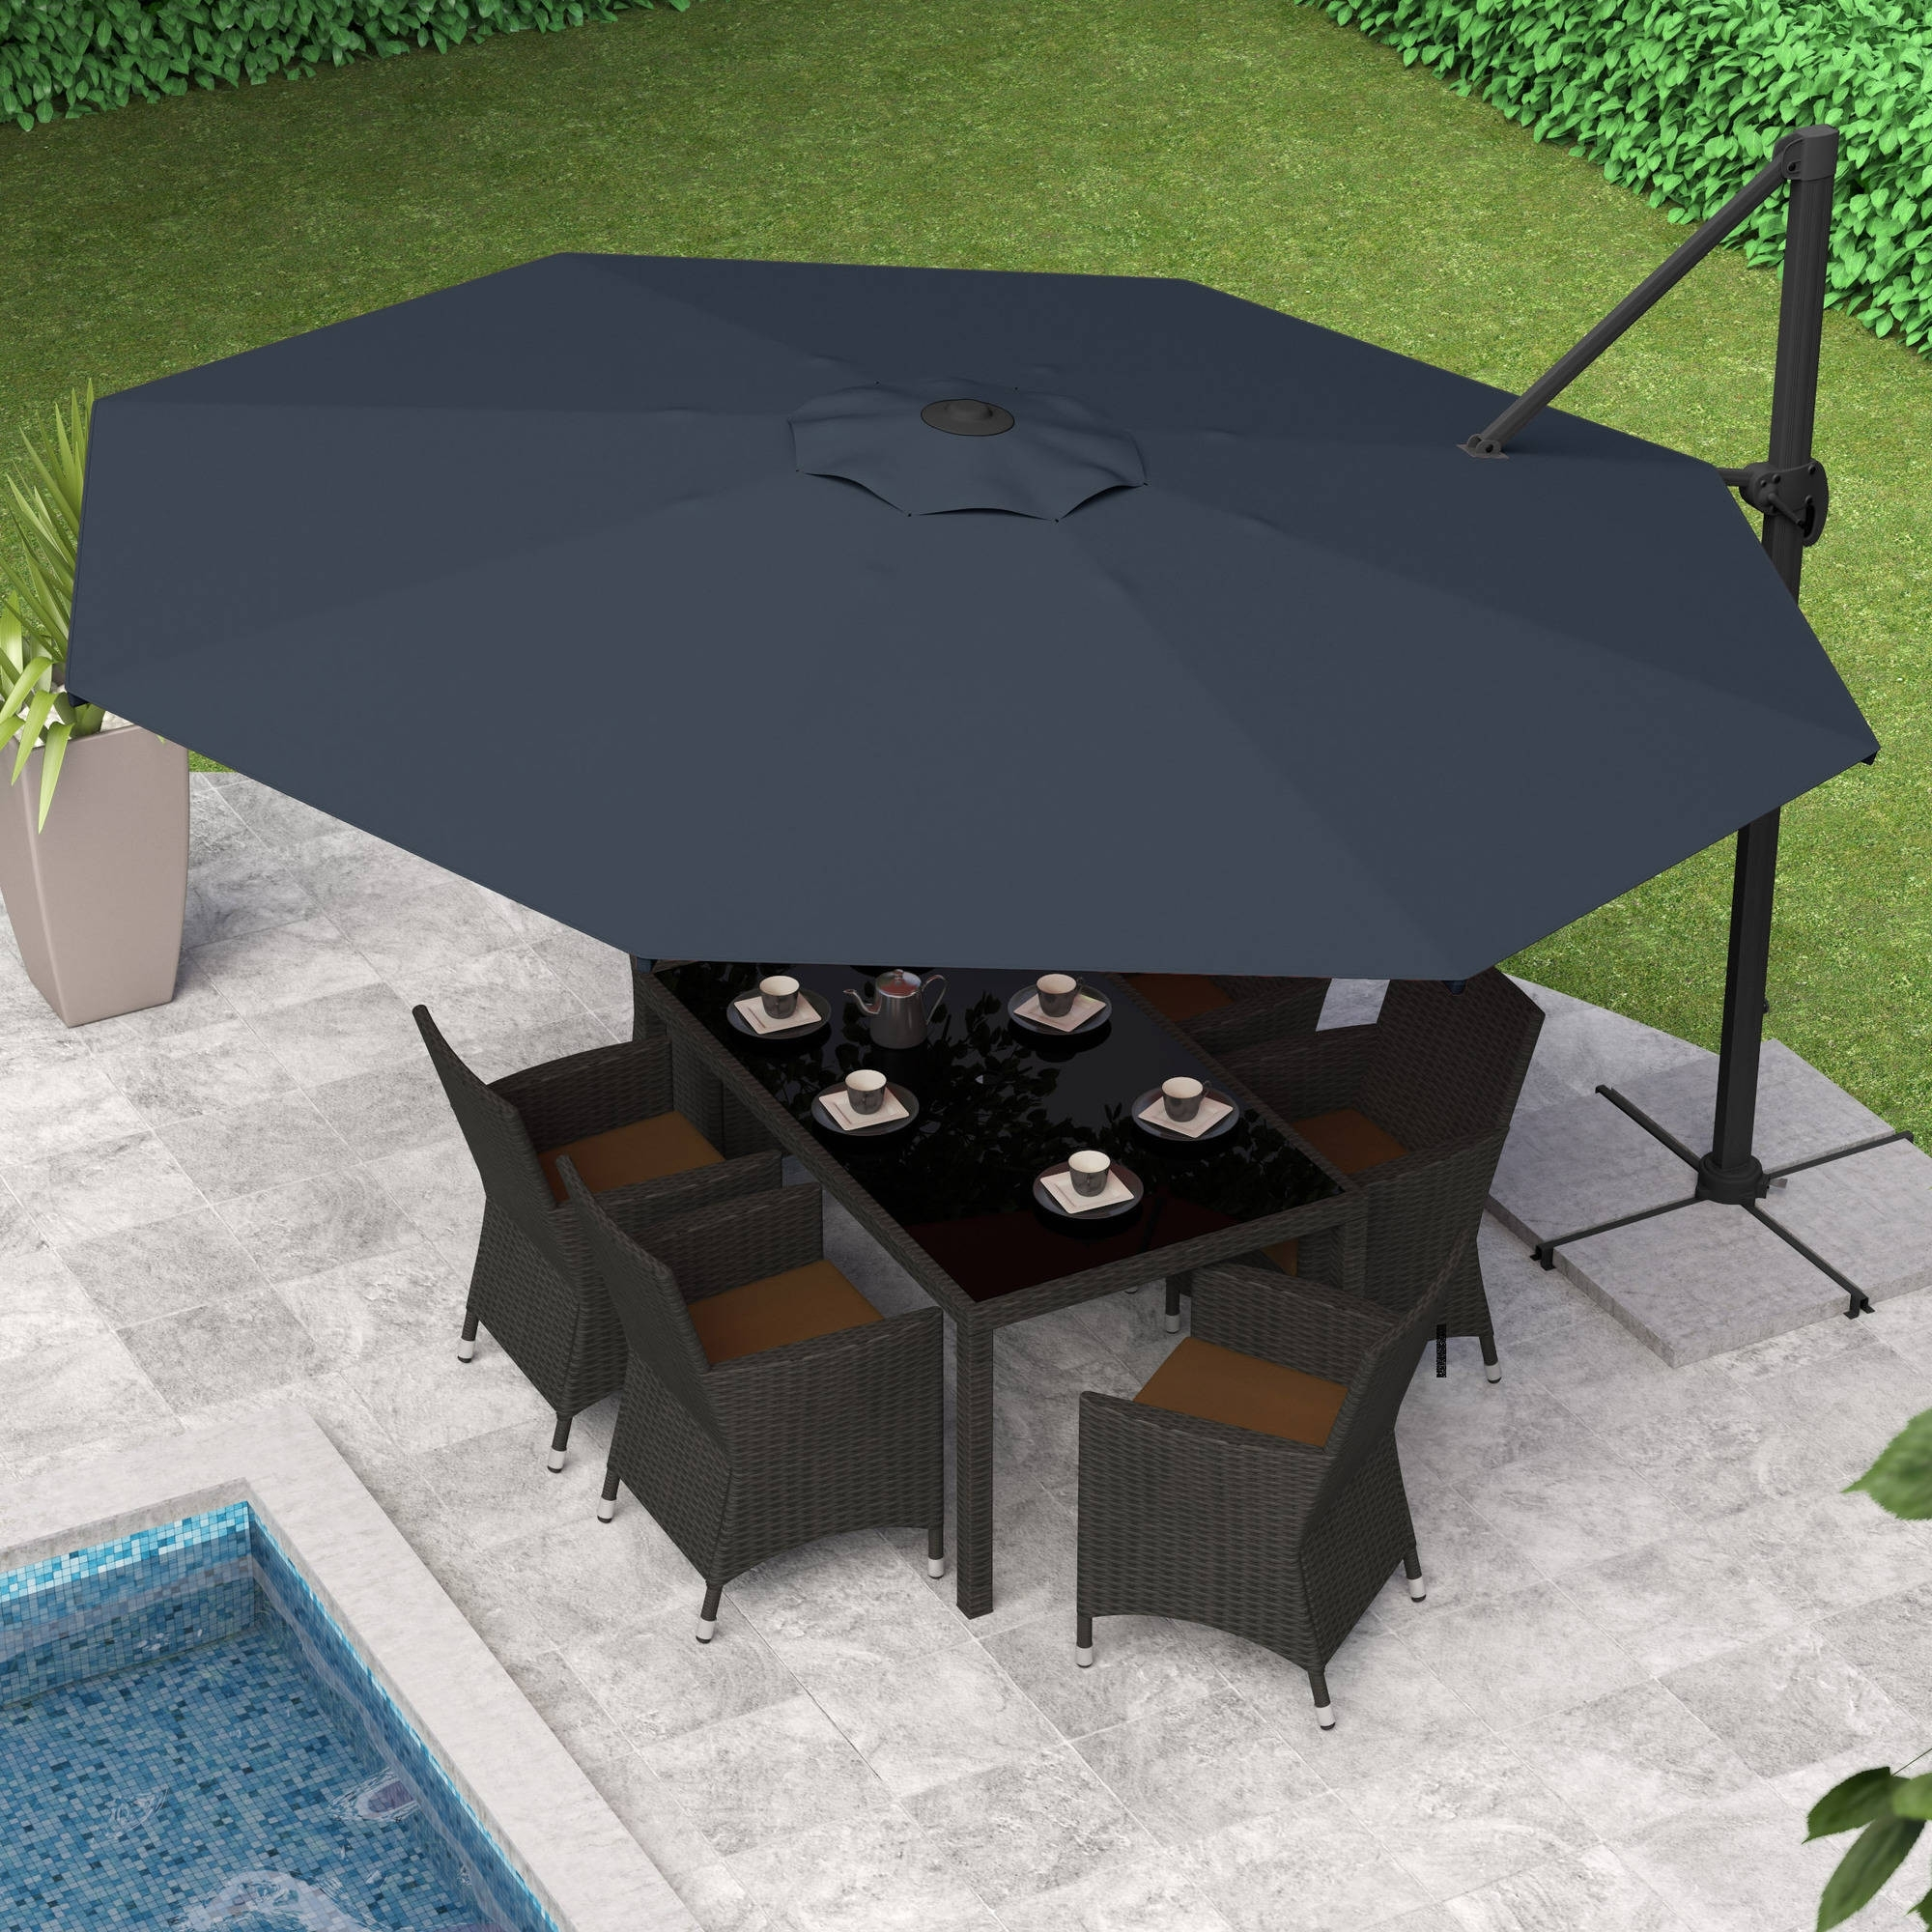 Latest Wayfair Patio Umbrellas Within 17 New Wayfair Patio Furniture Ideas Of Wayfair Outdoor Furniture Sale (View 6 of 20)